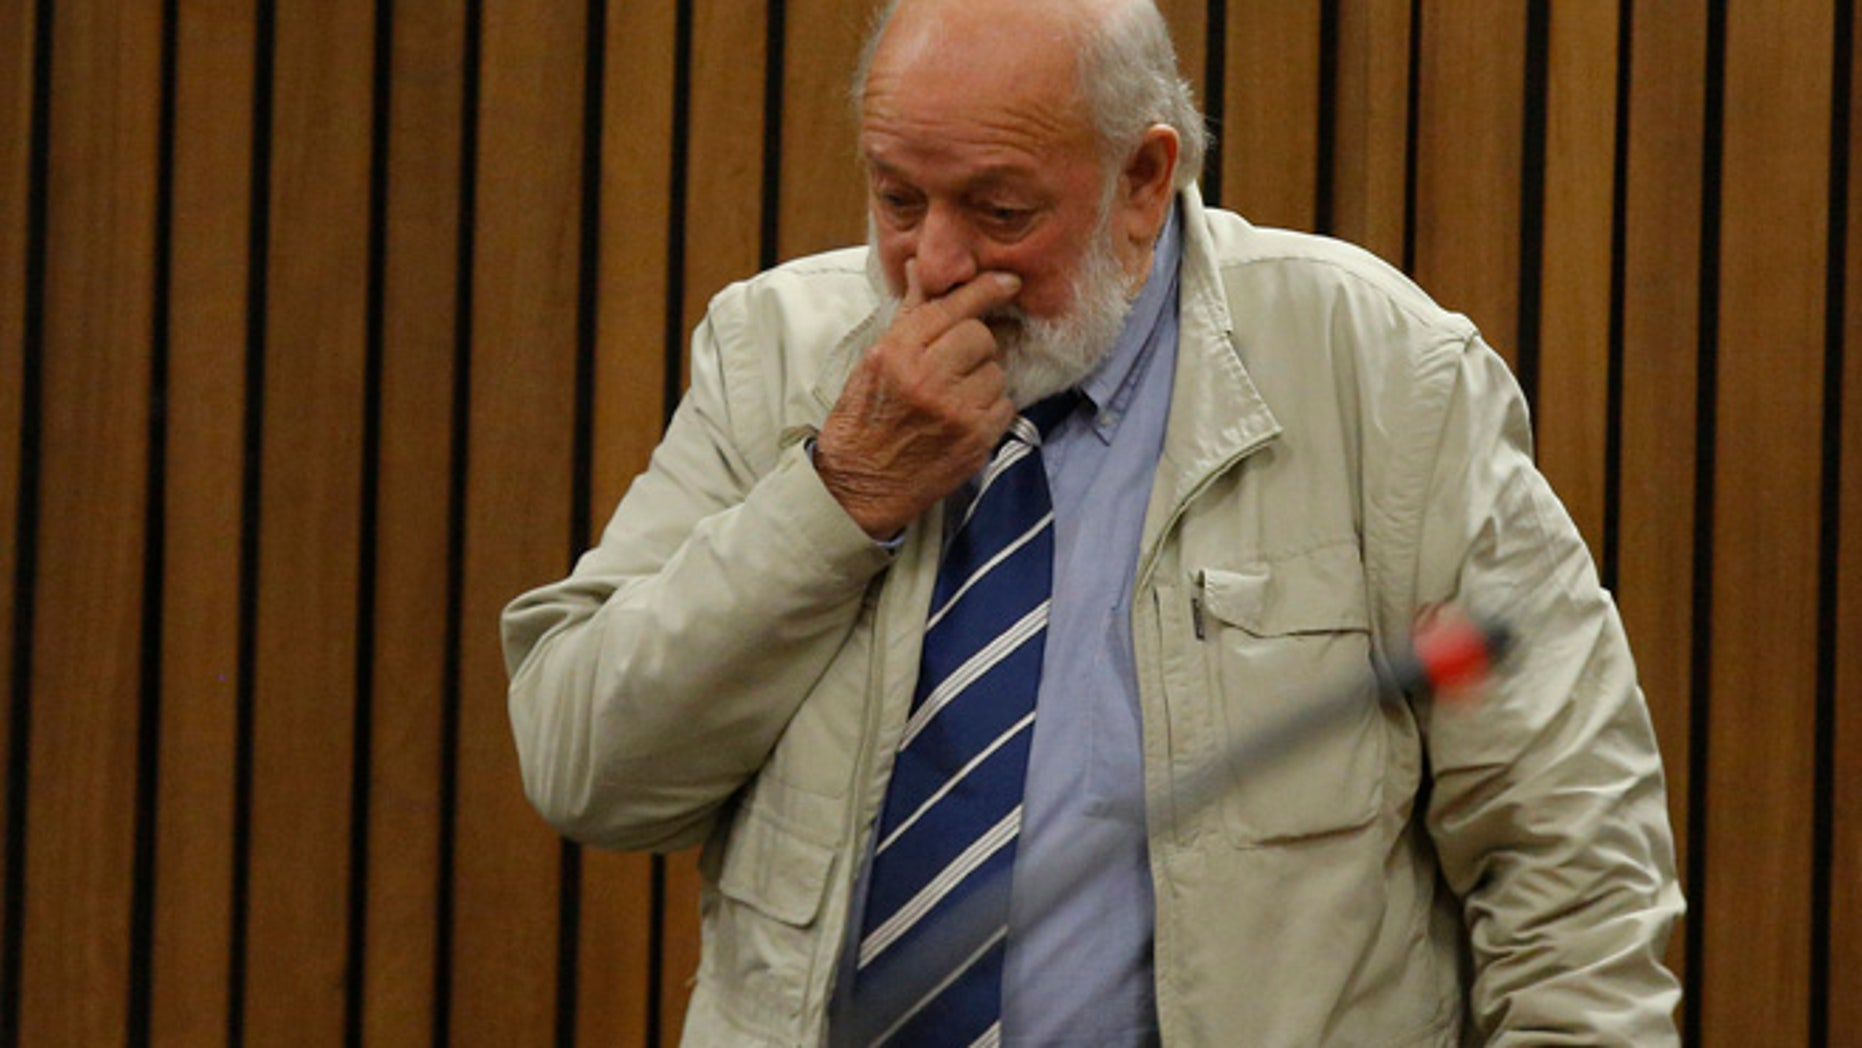 """The father of Reeva Steenkamp told the South African court that he wants Oscar Pistorius """"to pay for what he did."""""""